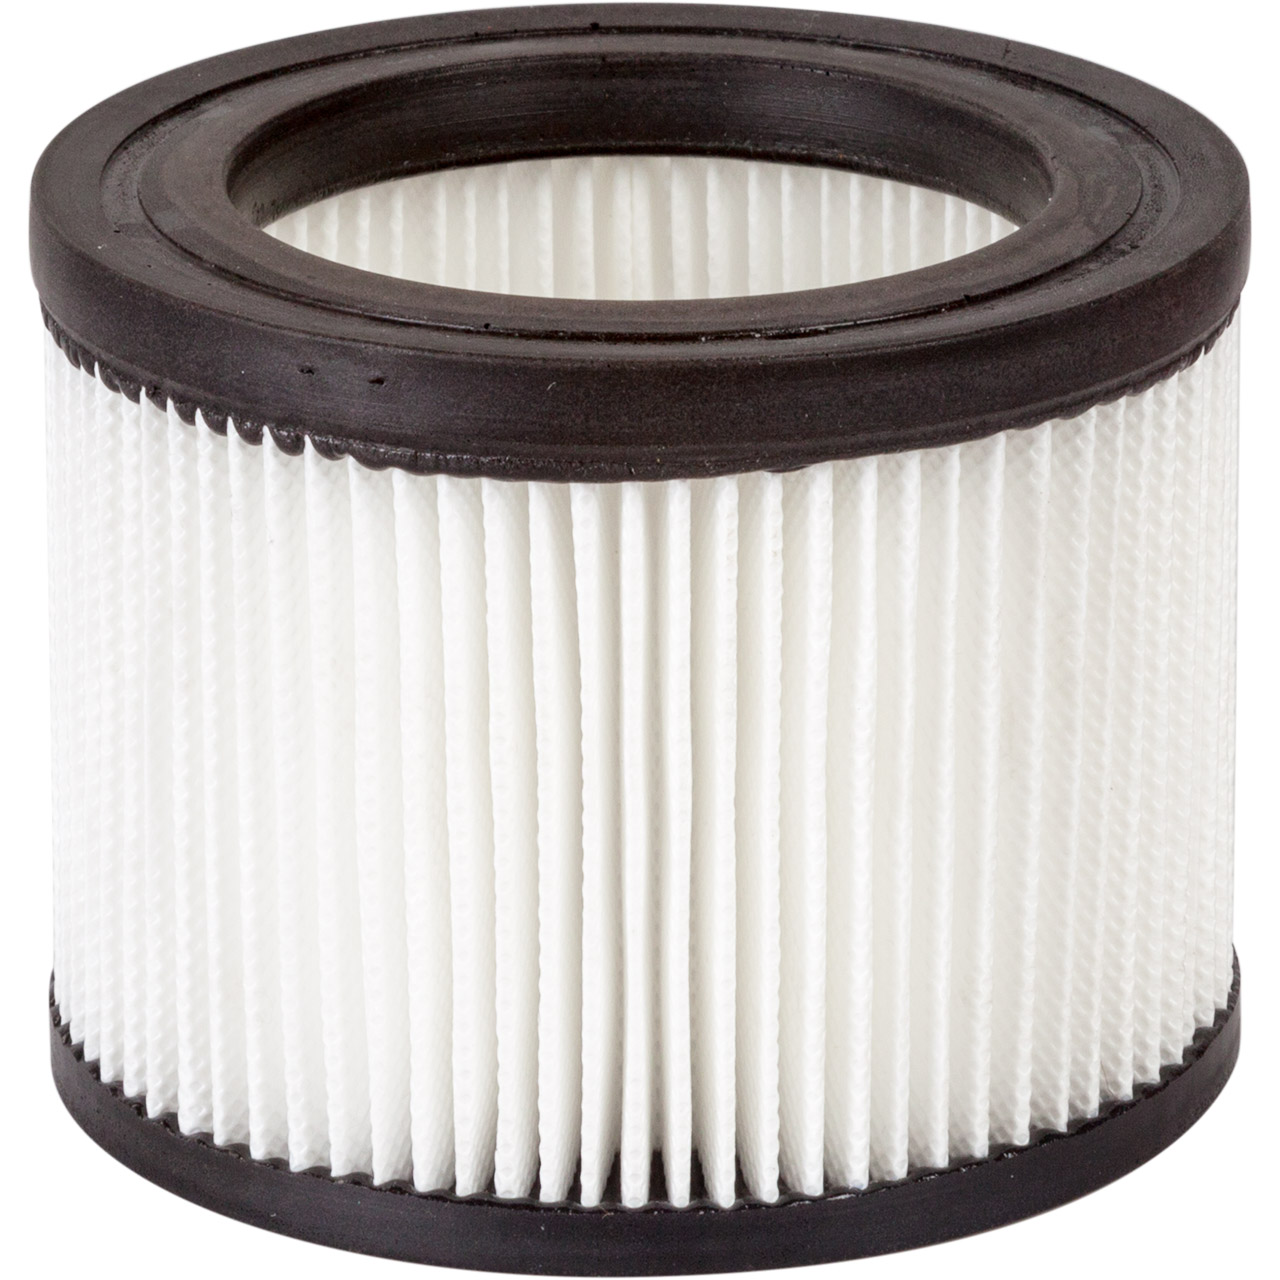 Filter for vacuum cleaner cartridge BORT BF-1218